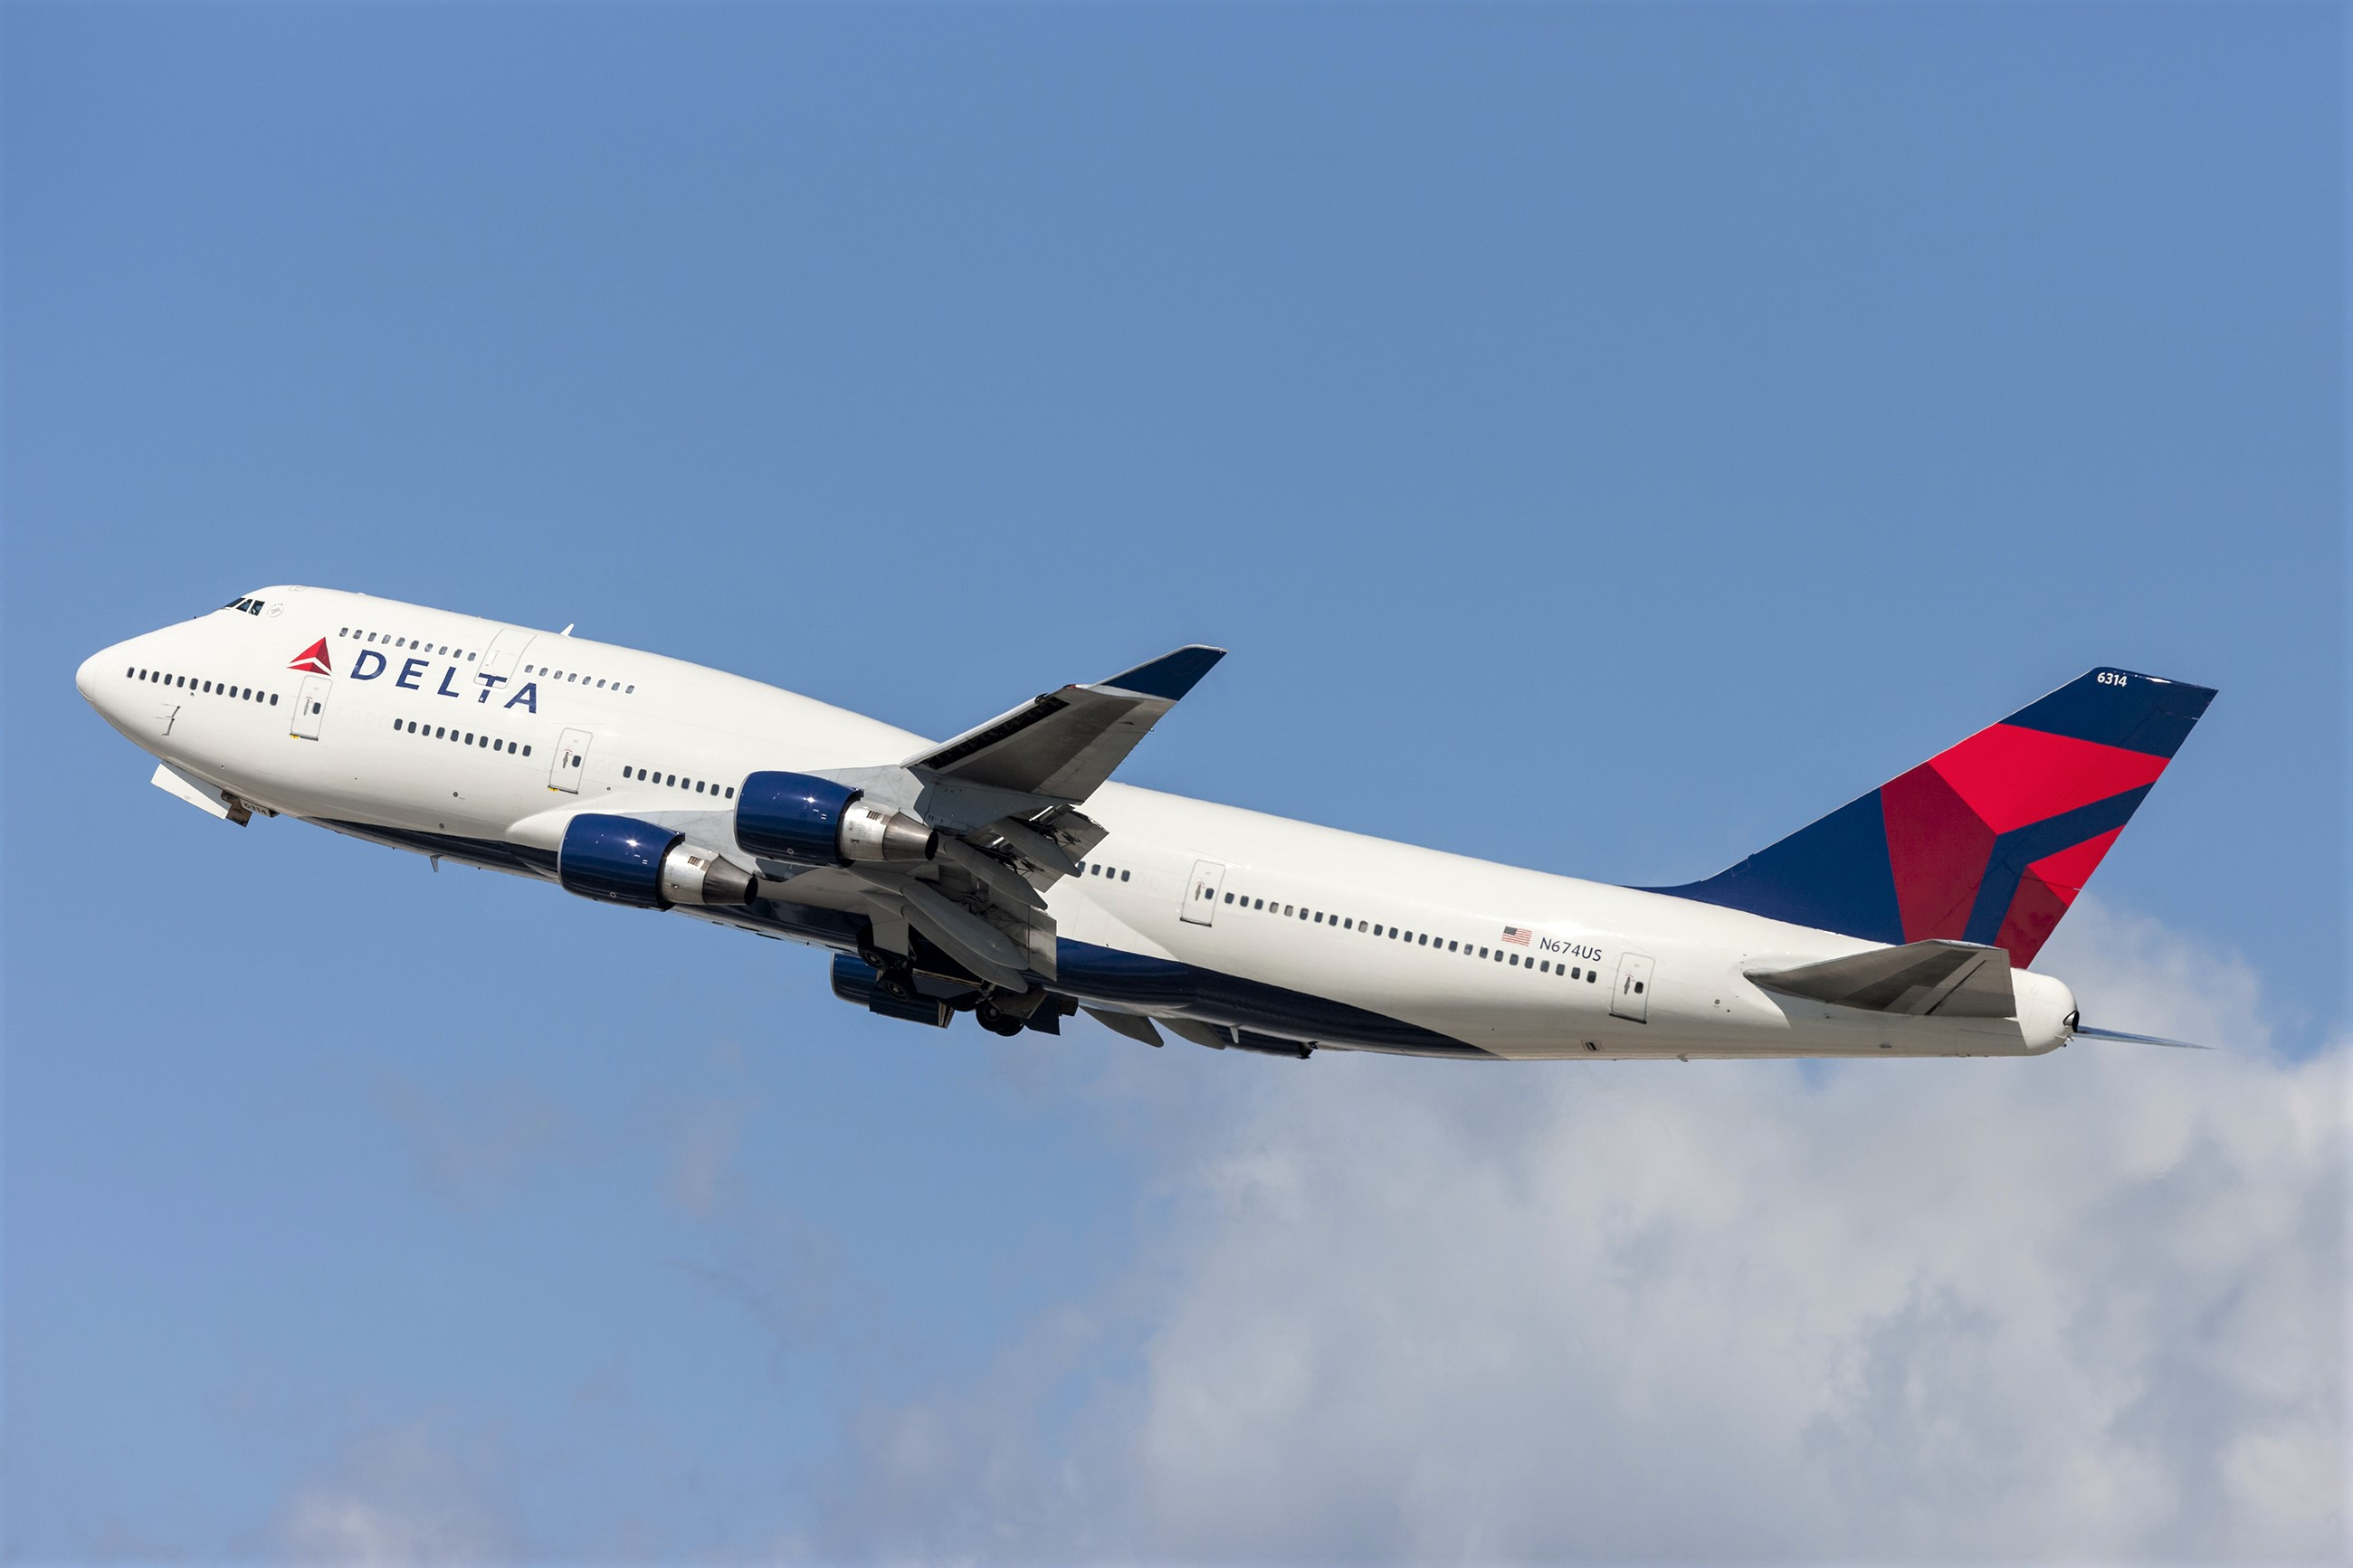 Delta Airplane Flying In Sky